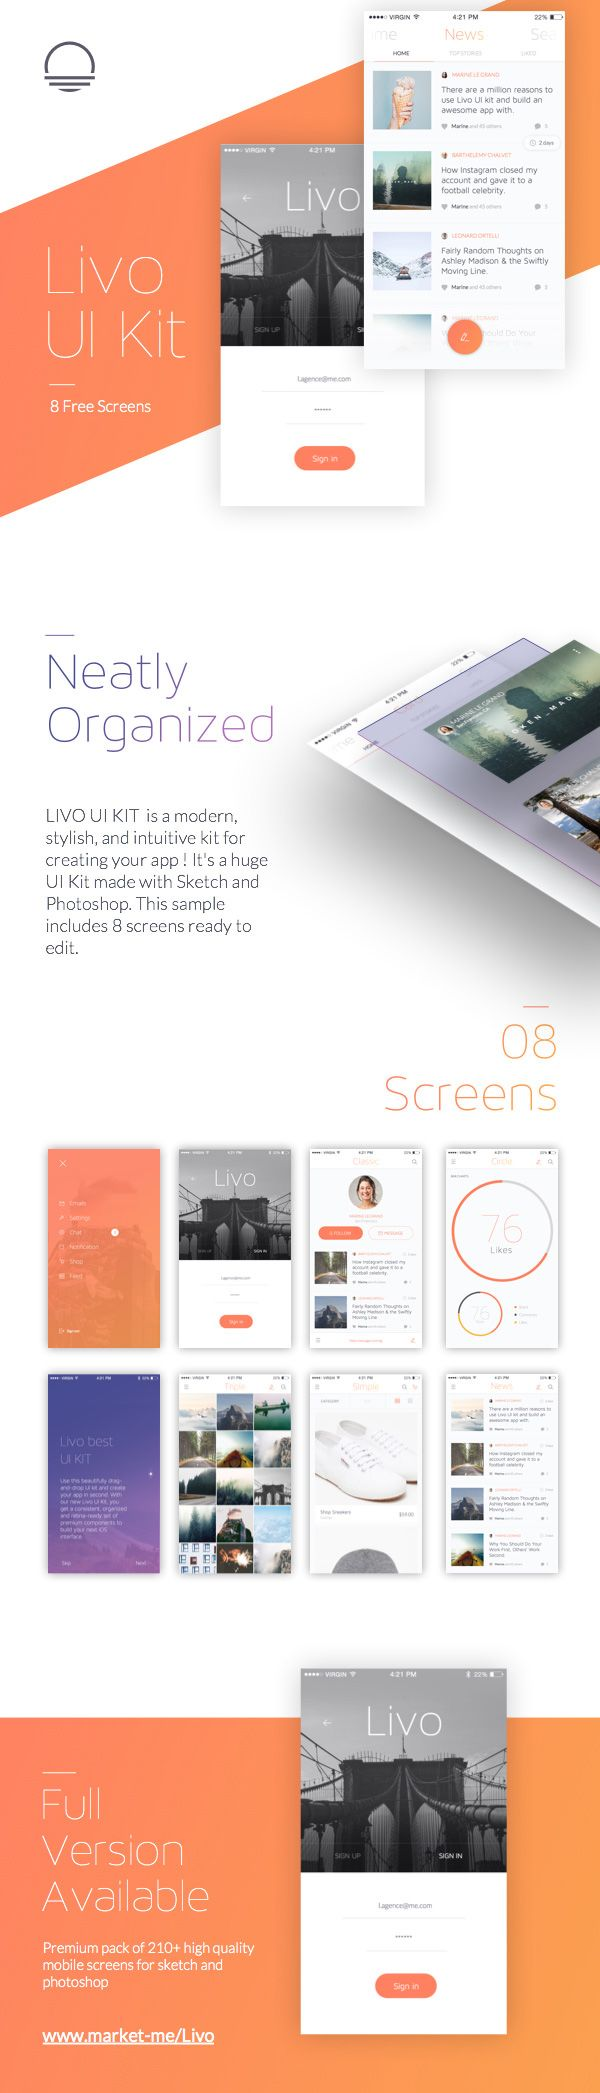 Livo UI Kit: Free Sample